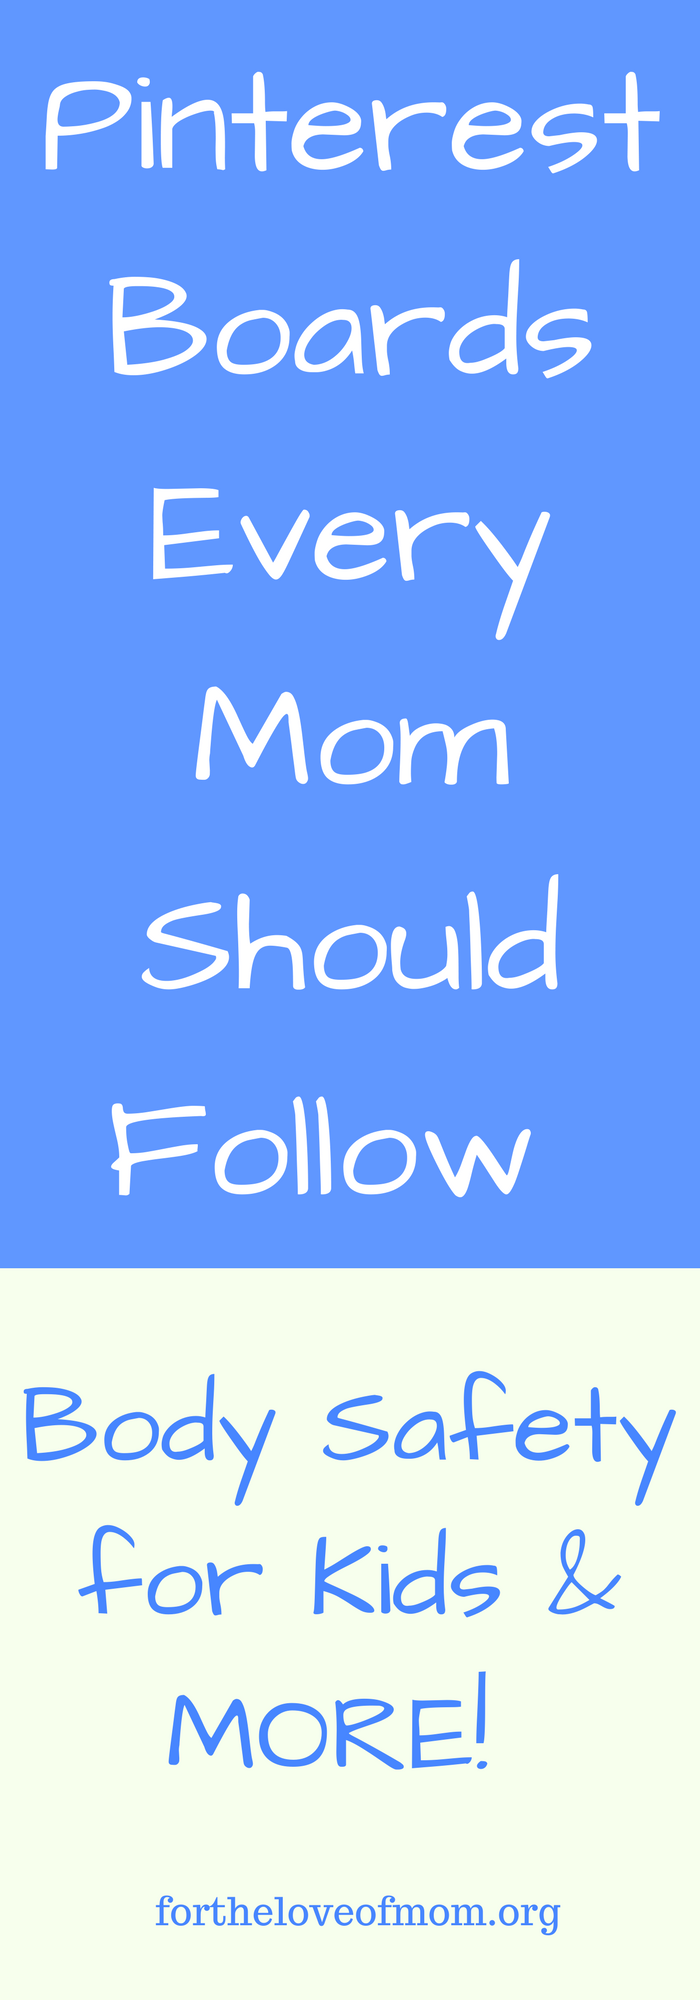 Pinterest Boards Every Mom Should Follow. Body Safety for Kids & MORE! www.fortheloveofmom.org